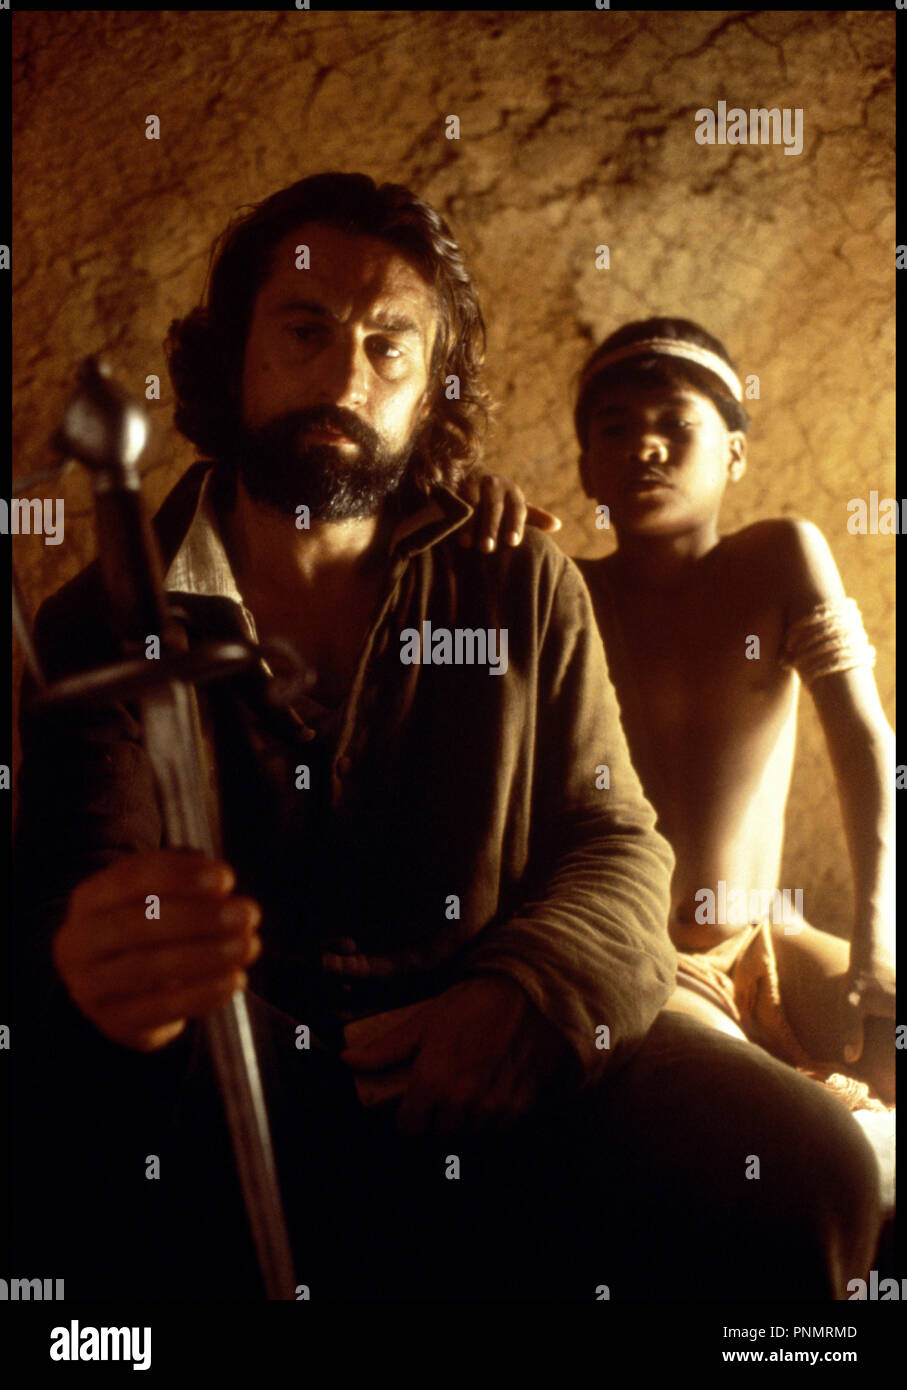 Prod DB © Goldcrest Films Ltd / Kingsmore Prod. Ltd / DR MISSION (THE MISSION) de Roland Joffe 1986 GB avec Robert De Niro Amerique du Sud, indiens, pelerinage, jesuite, epee - Stock Image